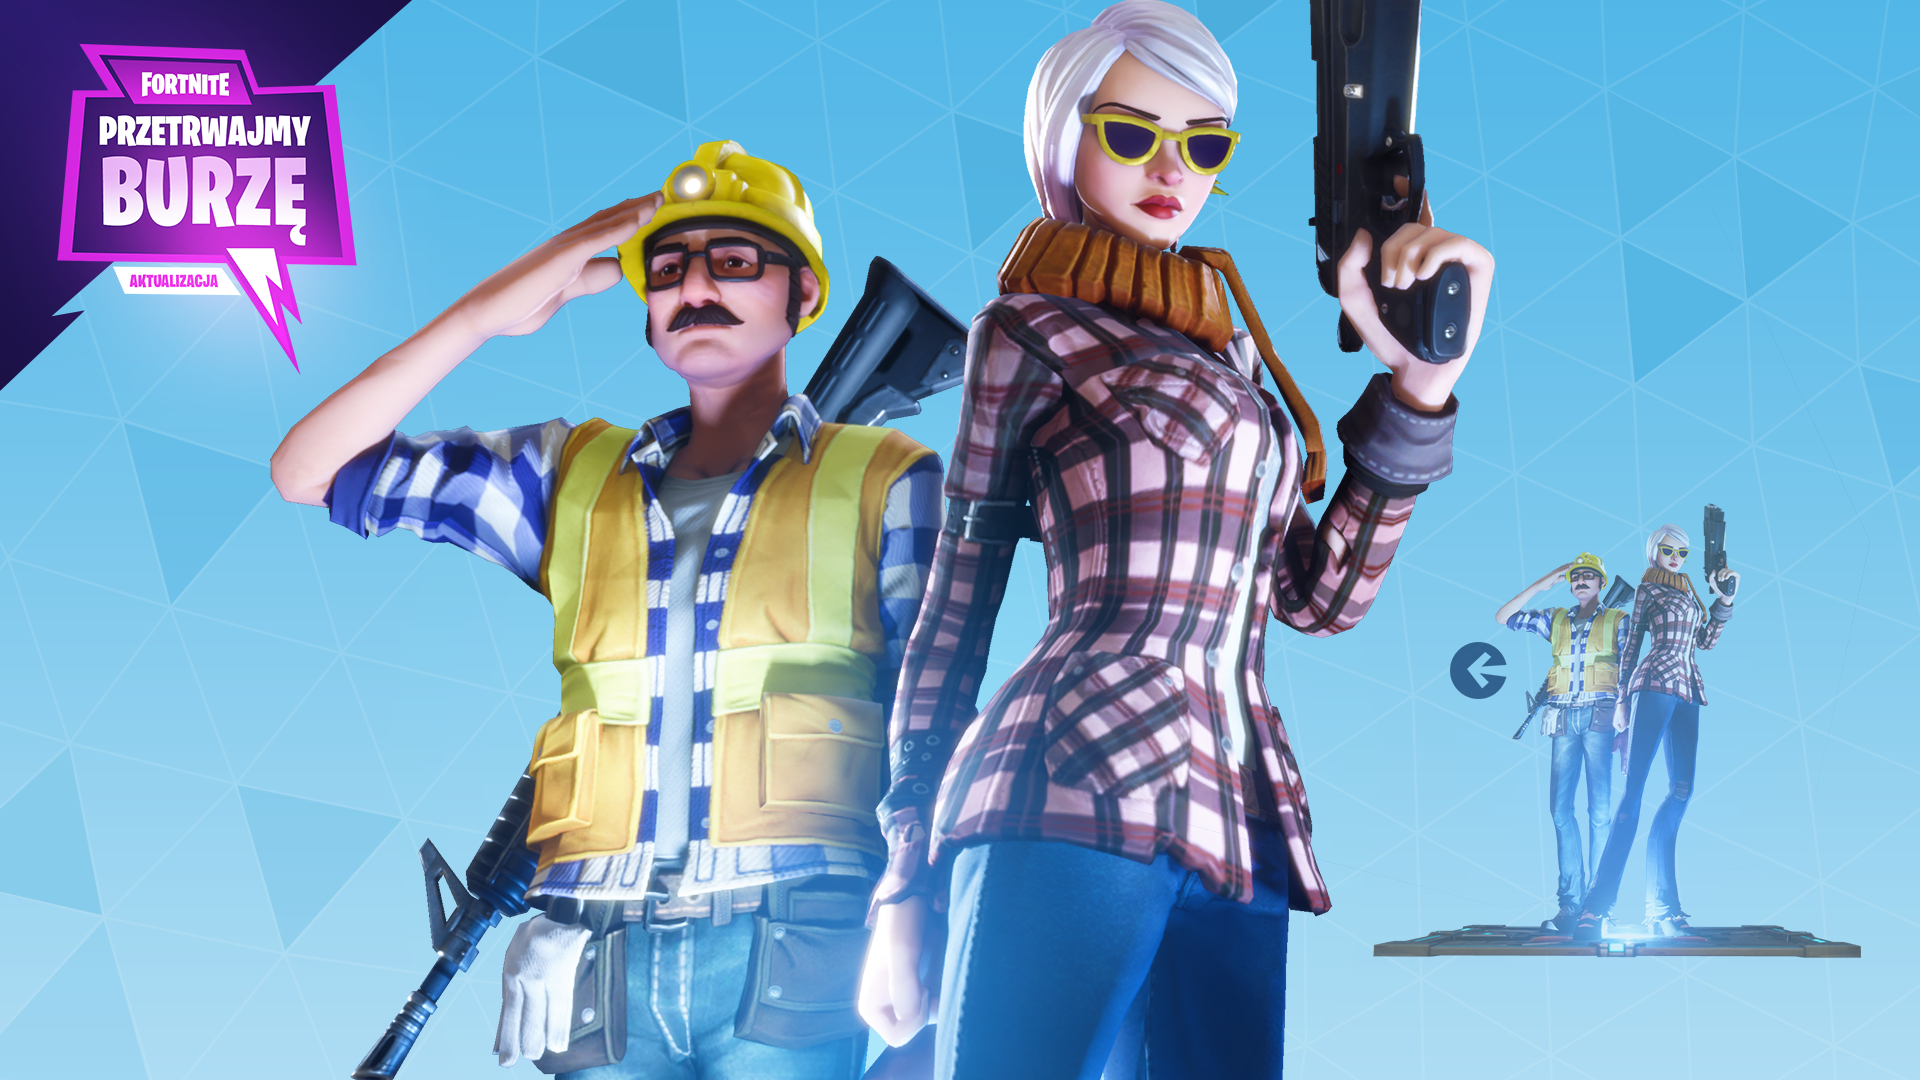 Fortnite%2Fblog%2Fsurvive-the-storm---release-notes%2FPL_Defenders-1920x1080-56706e795a7e3140586ce73d35cf4f77e2207eb3